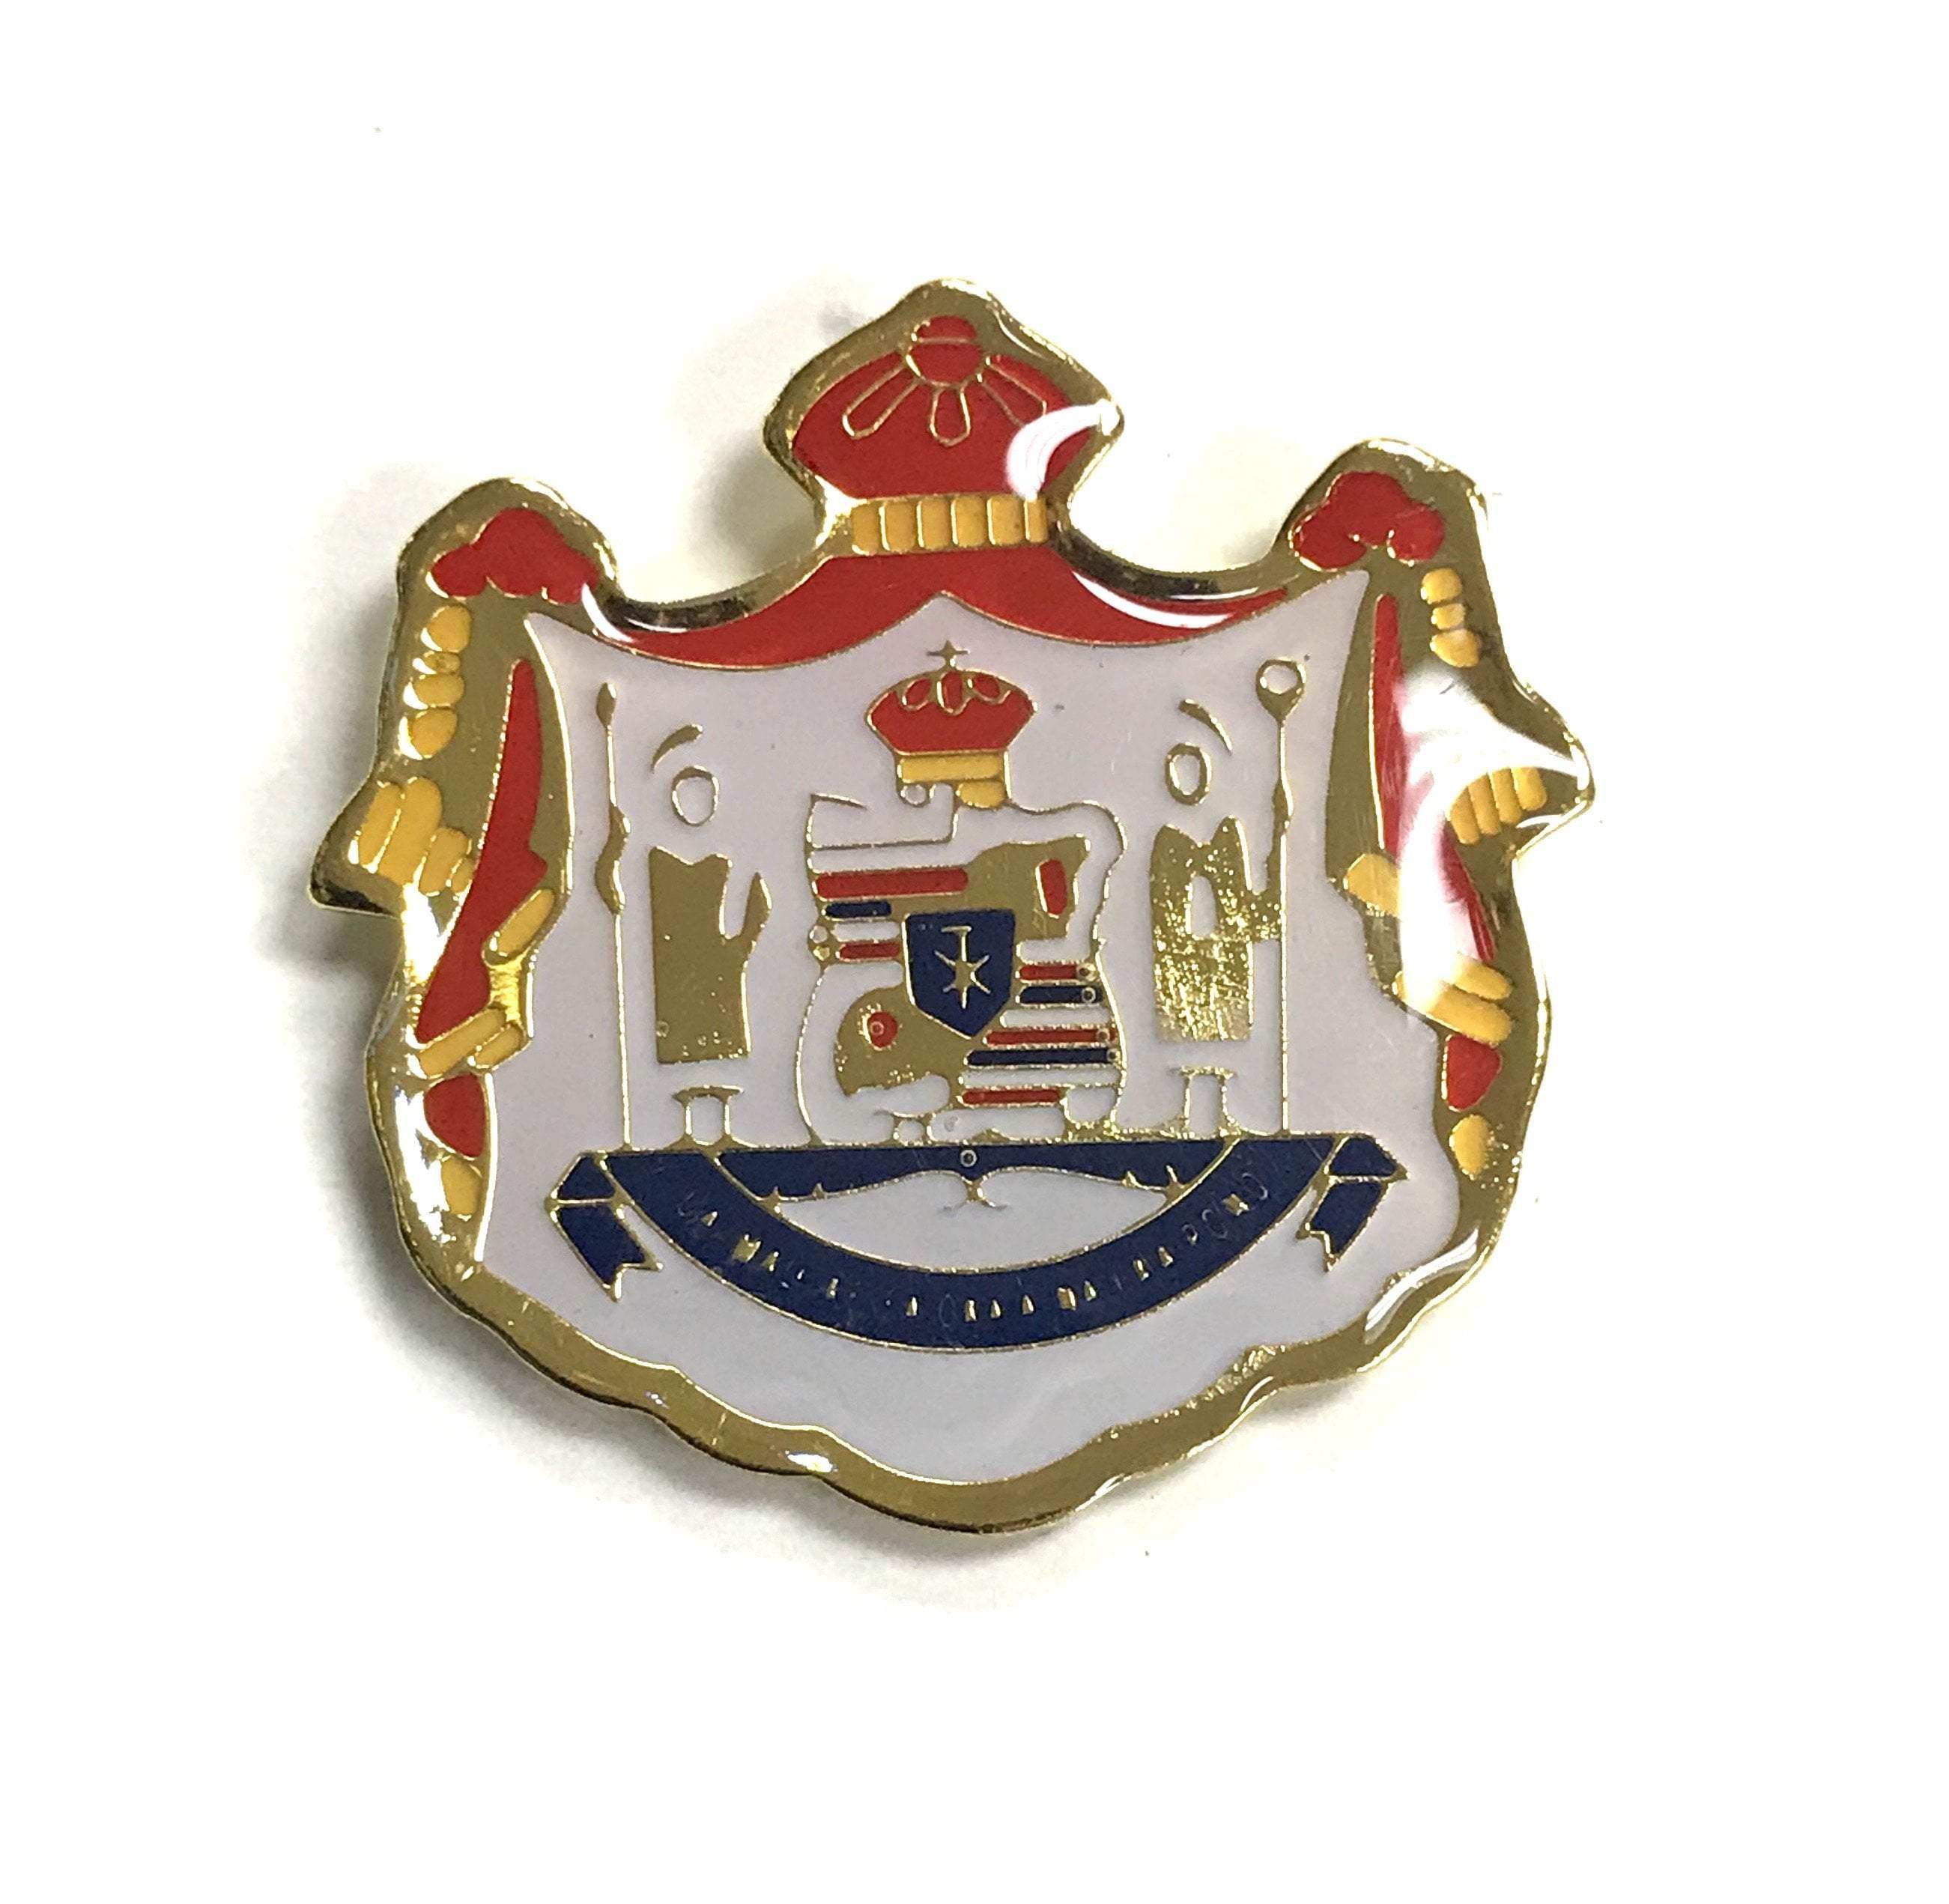 Hawaii Coat of Arms Pin - Leilanis Attic